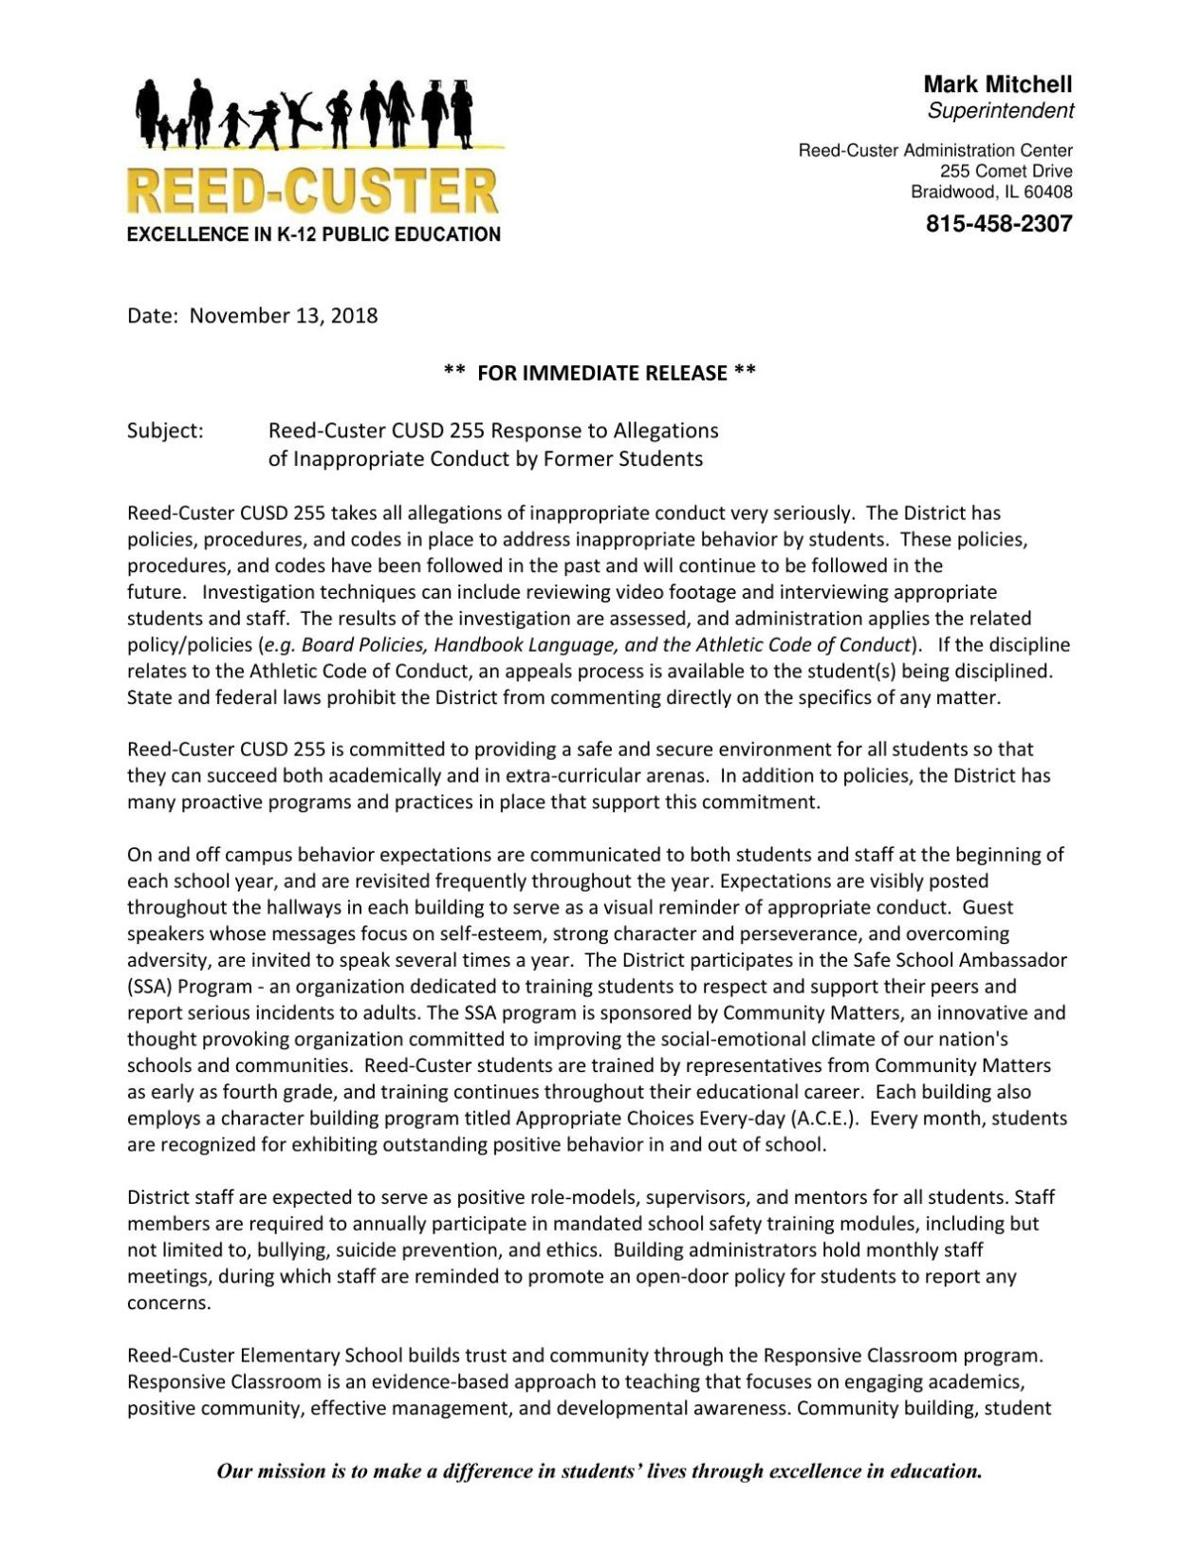 Reed-Custer statement on July 2017 incident